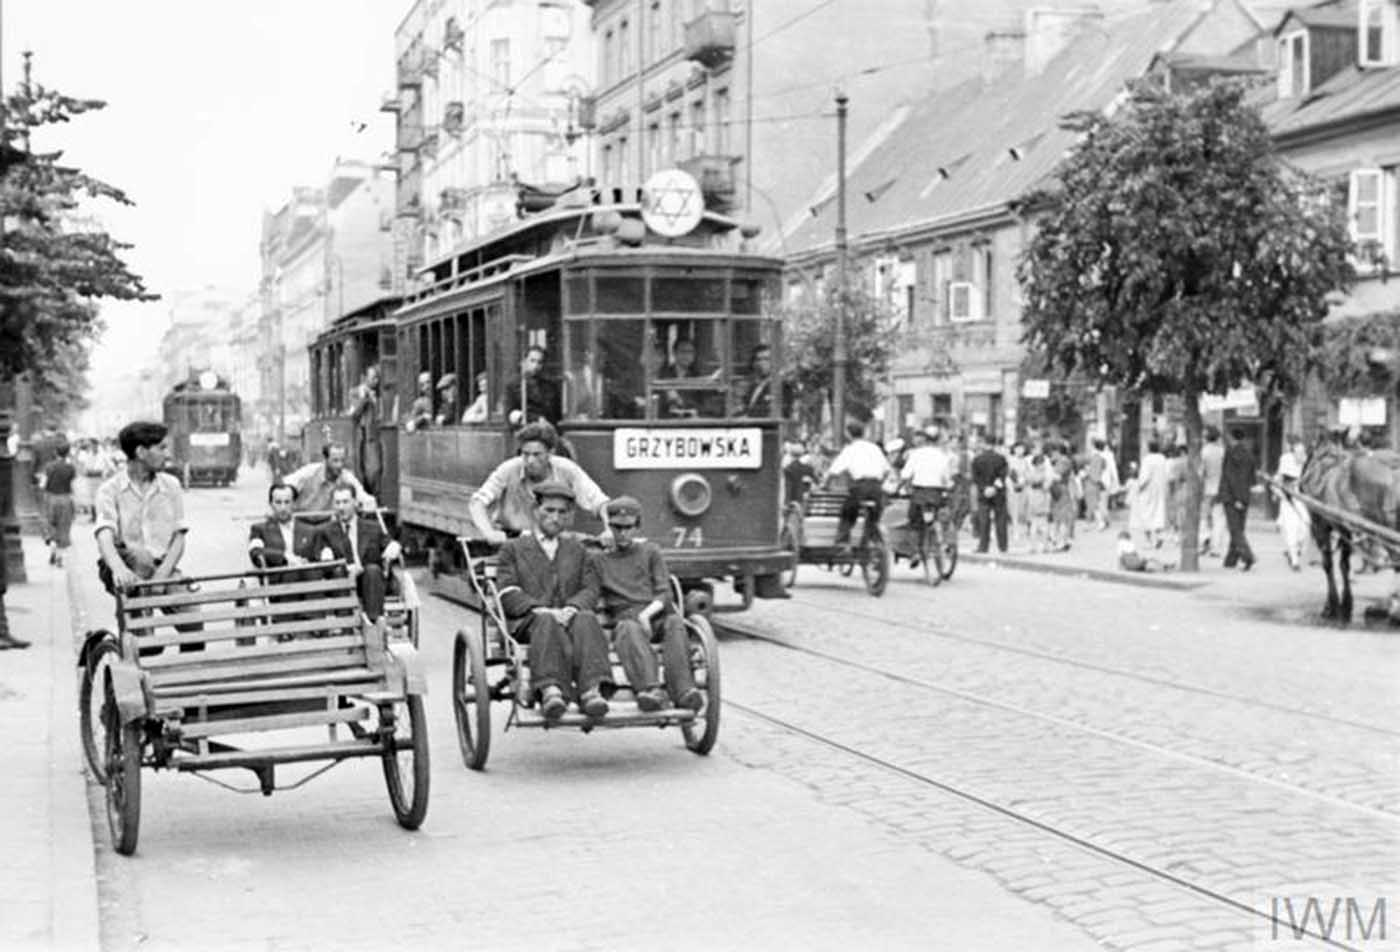 Street rickshaws and a tramcar carrying passengers along Leszno Street in the ghetto, summer 1941. This particular tramline was run between the Muranowski Square and the Grzybowska Street. The plaque on the tram indicates it runs towards Grzybowska Street.